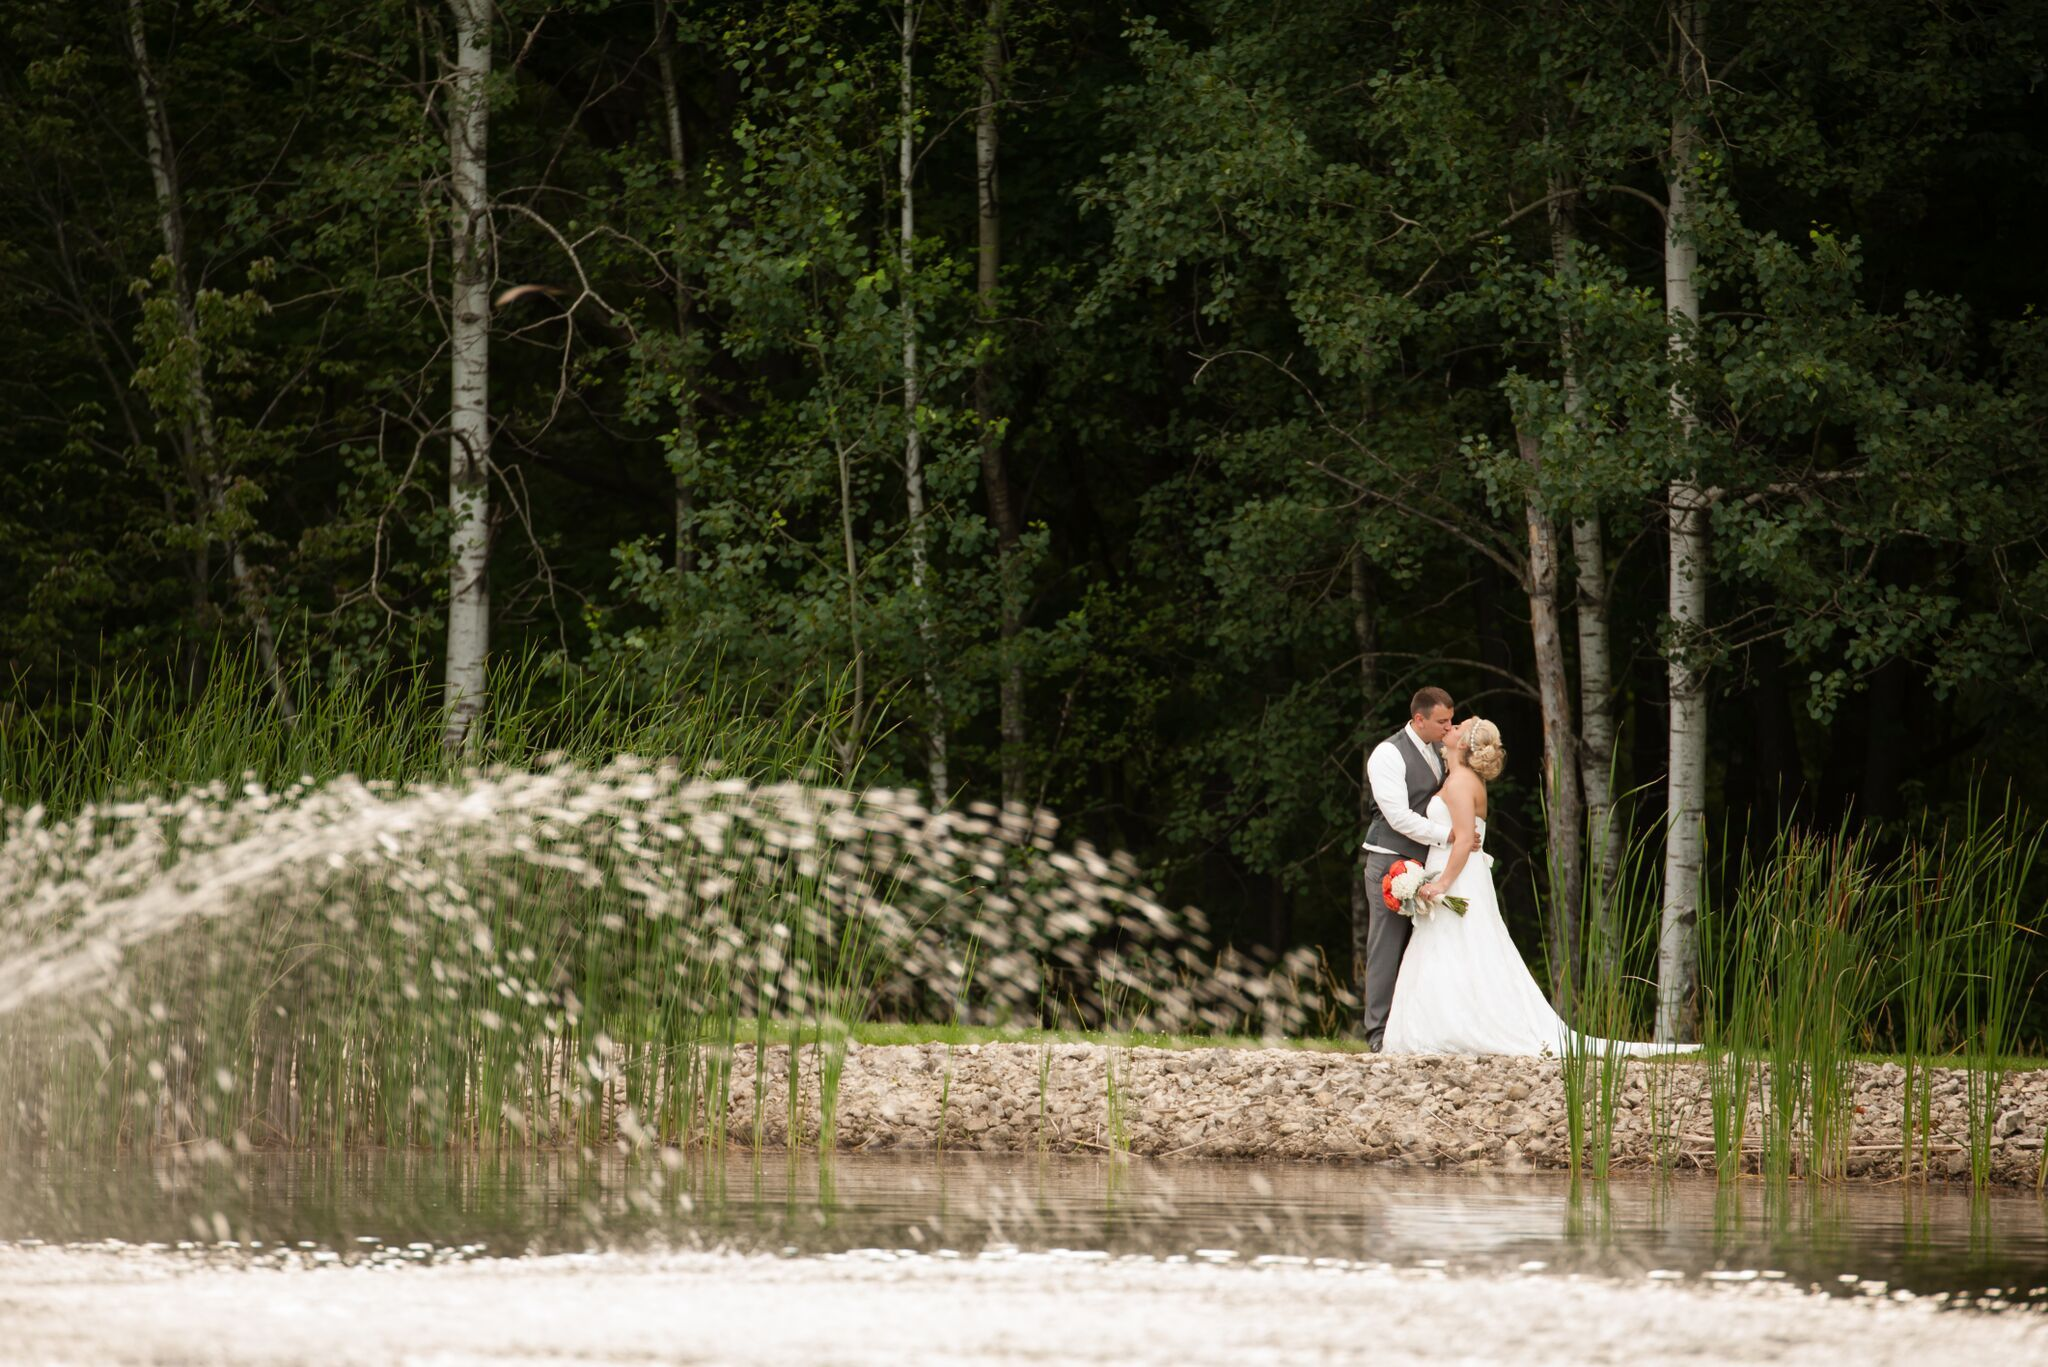 Dixon's Apple Orchard and Wedding Venue, Chippewa Valley